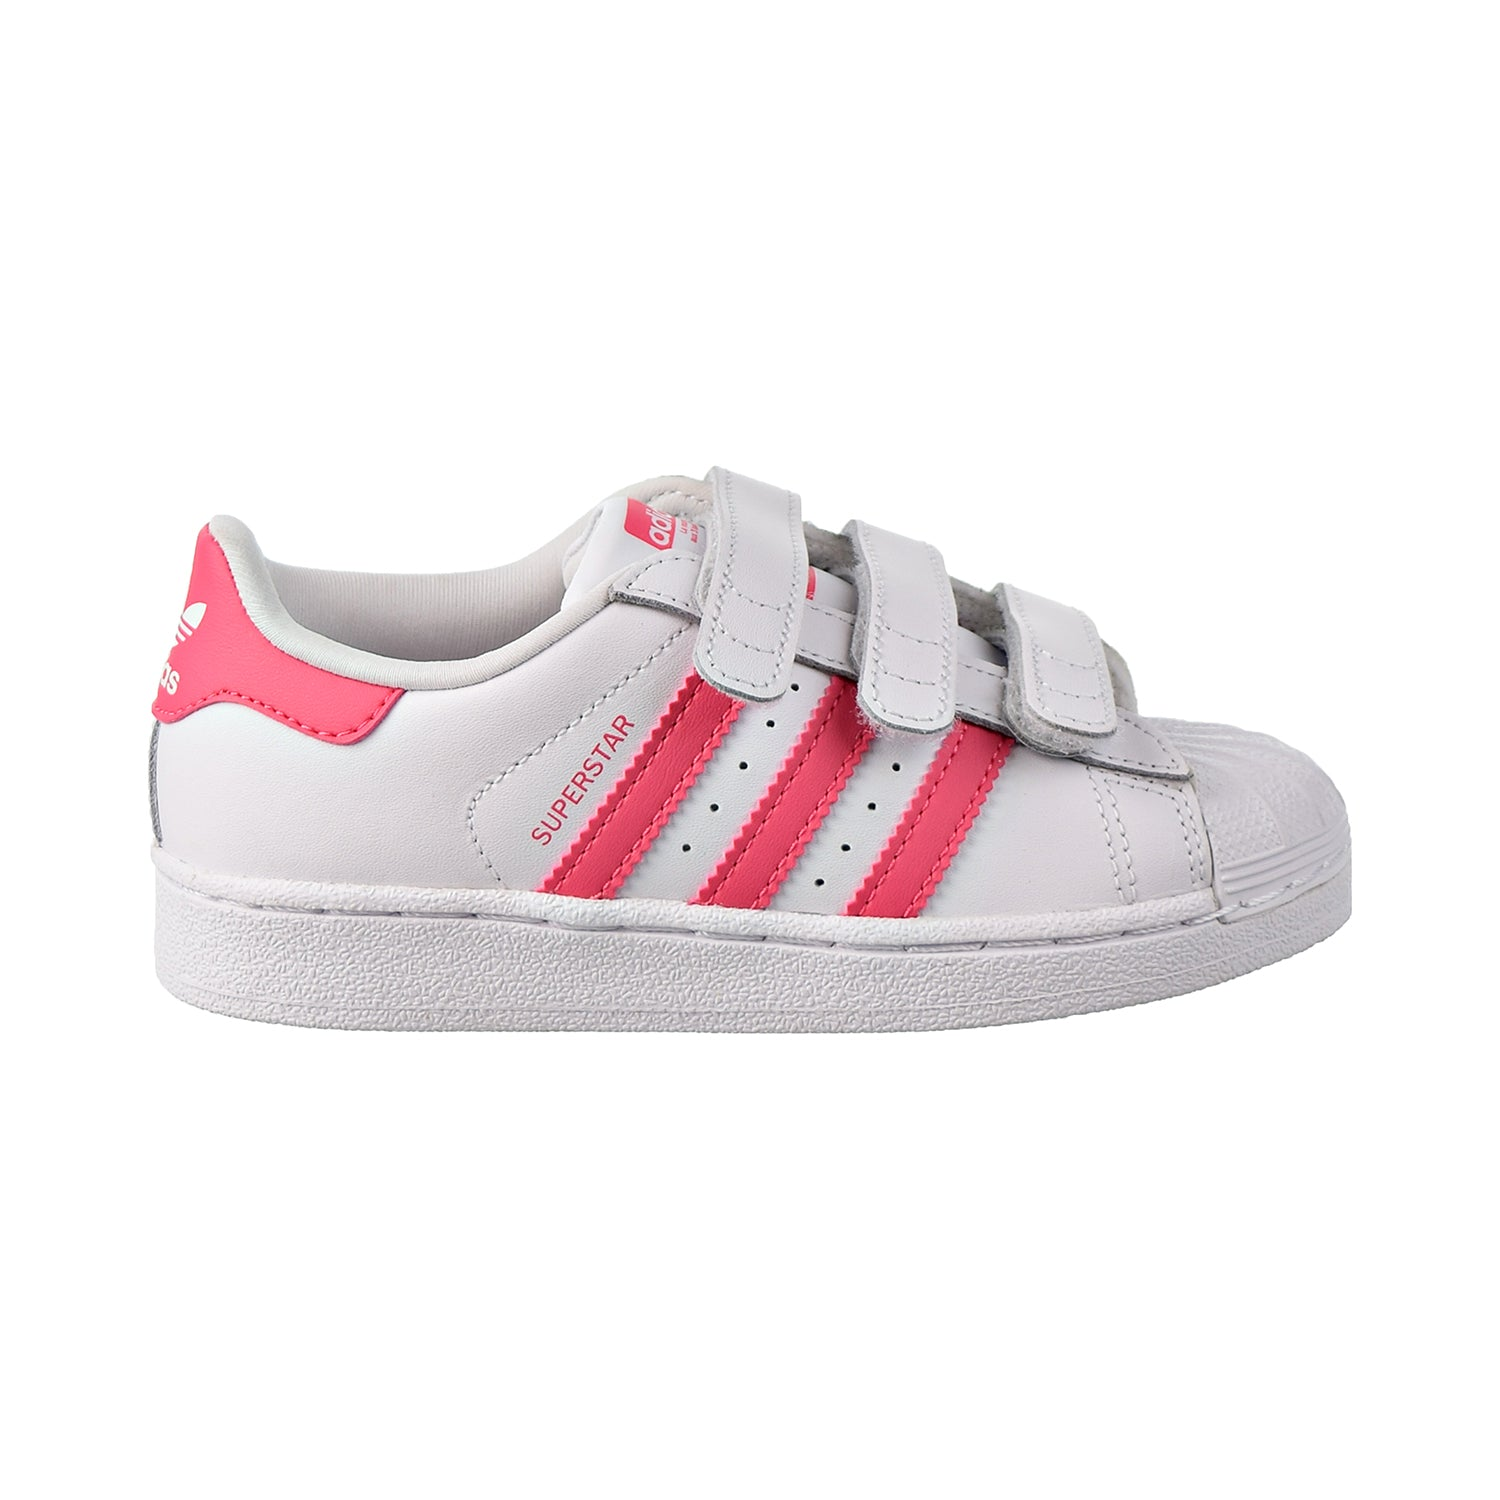 Adidas Superstar CF C Little Kids Shoes Footwear White/Real Pink/Real Pink